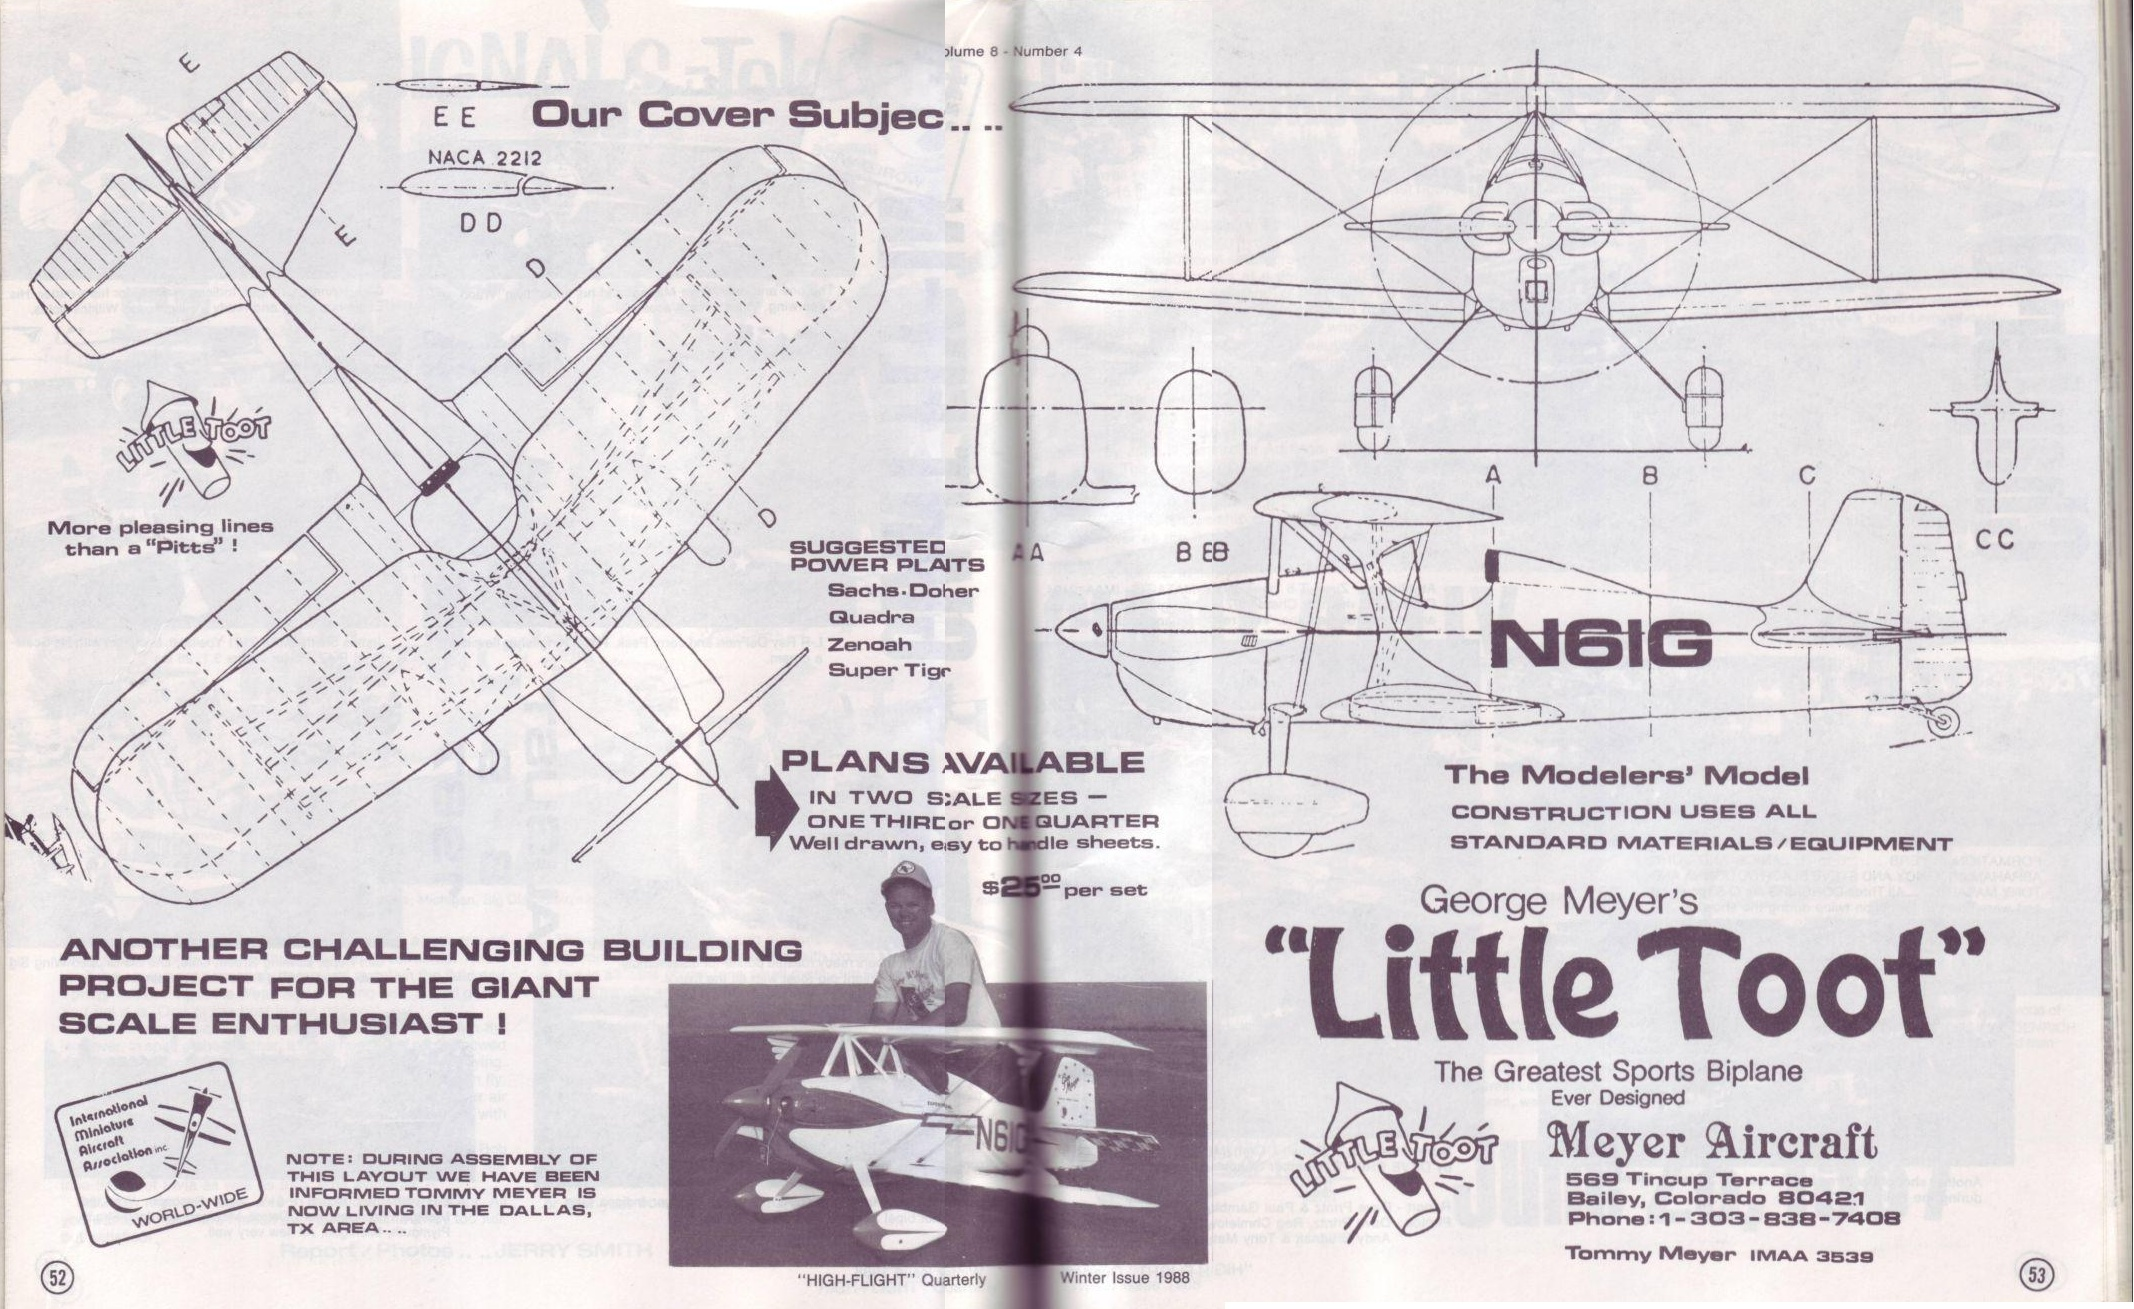 model%20plan%20%20little%20toot Homebuilt Biplane Plans on airplane blueprints and plans, wooden airplane plans, homemade airplane plans, vintage biplane plans, eaa biplane plans, biplane airplane plans, composite airplane plans, styrofoam pup plane plans, wood biplane plans, biplane kits or plans, homebuilt aircraft, turbocharger jet engine plans,